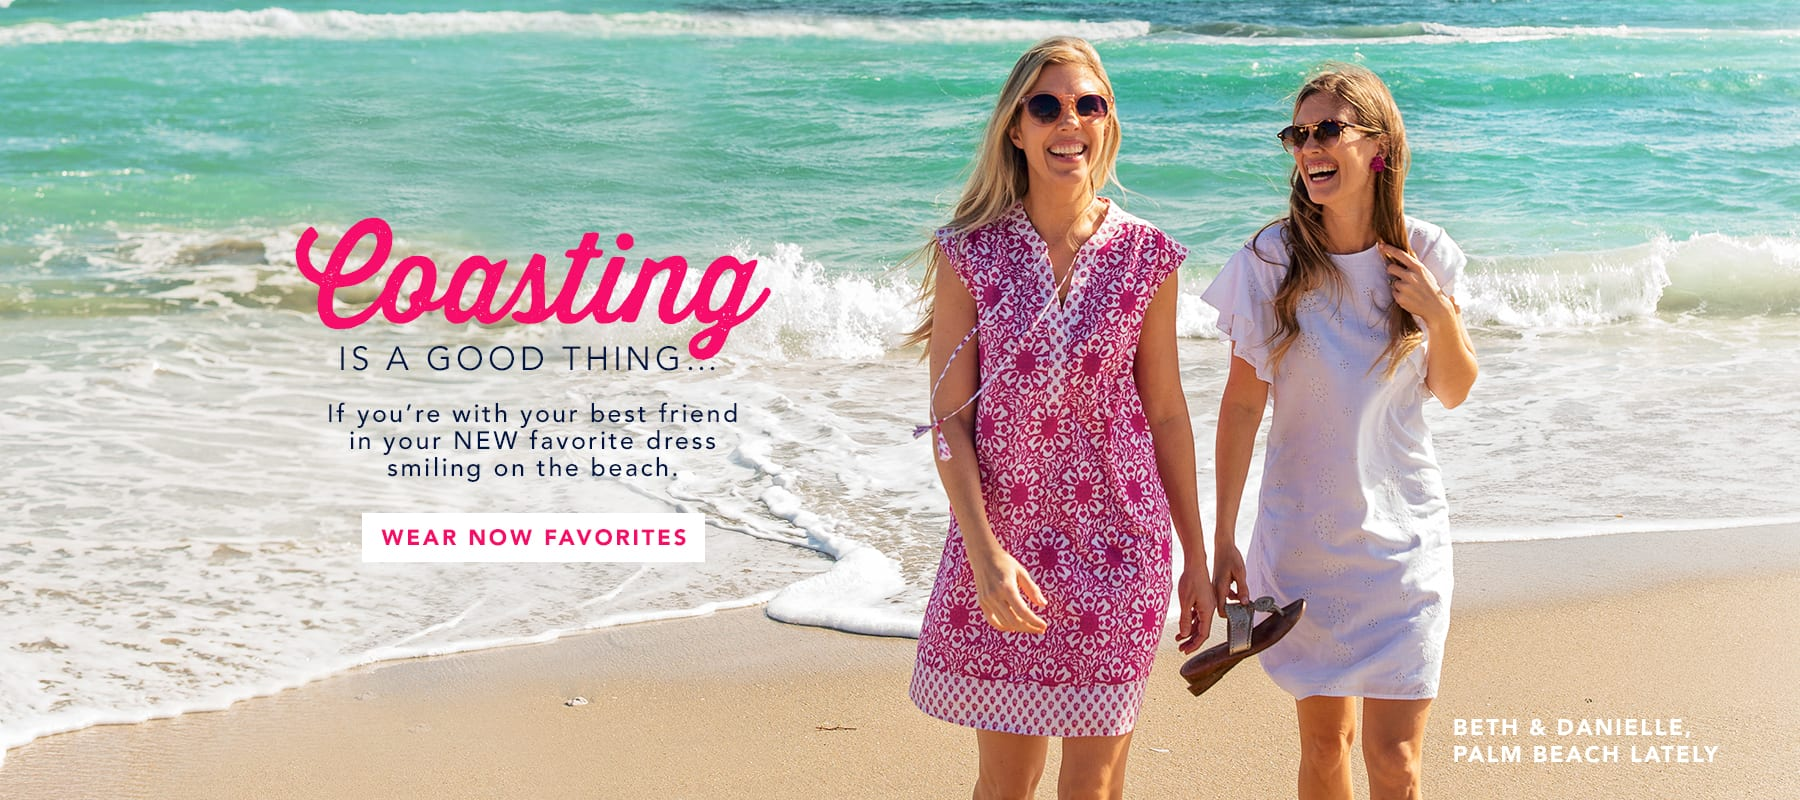 Coasting is a good thing... if you're with your best friend in your new favorite dress smiling on the beach.Shop Wear Now Favorites.